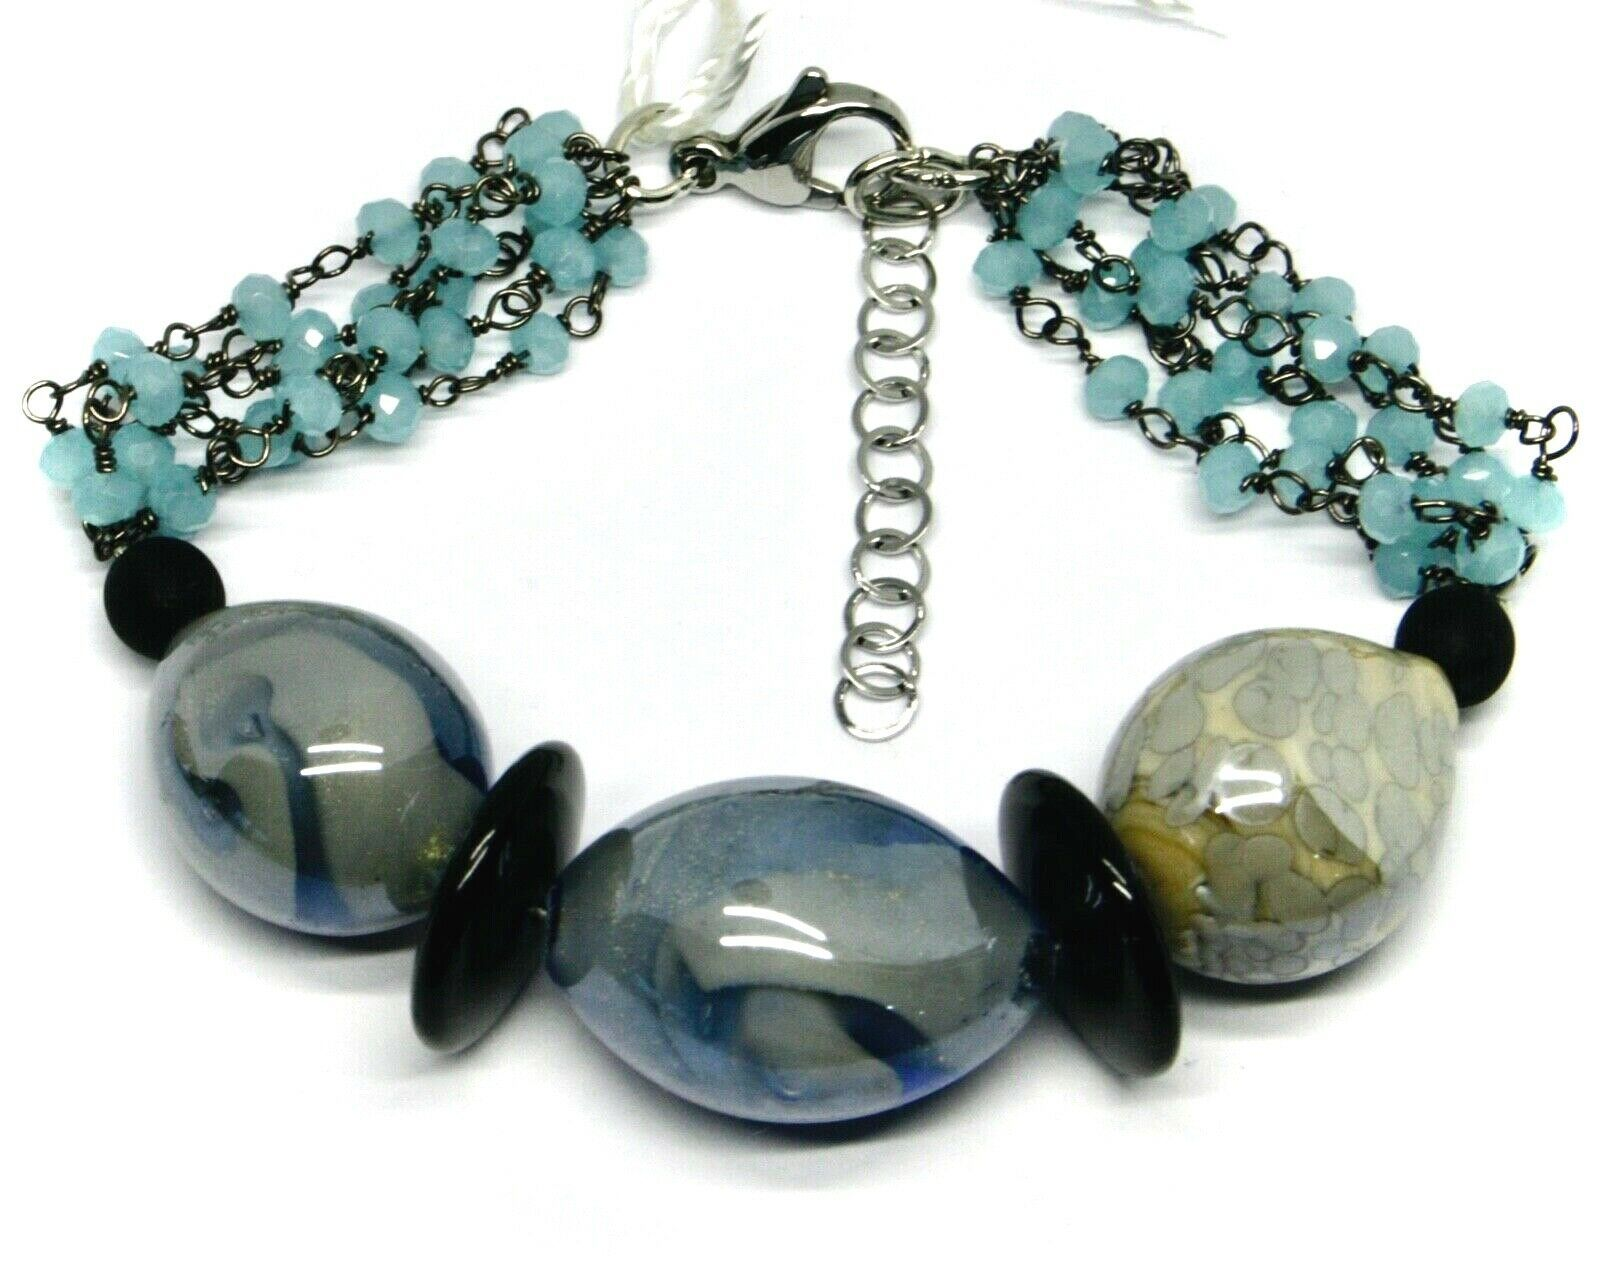 BRACELET BLACK, BLUE SPOTTED DROP OVAL DISC MURANO GLASS, MADE IN ITALY